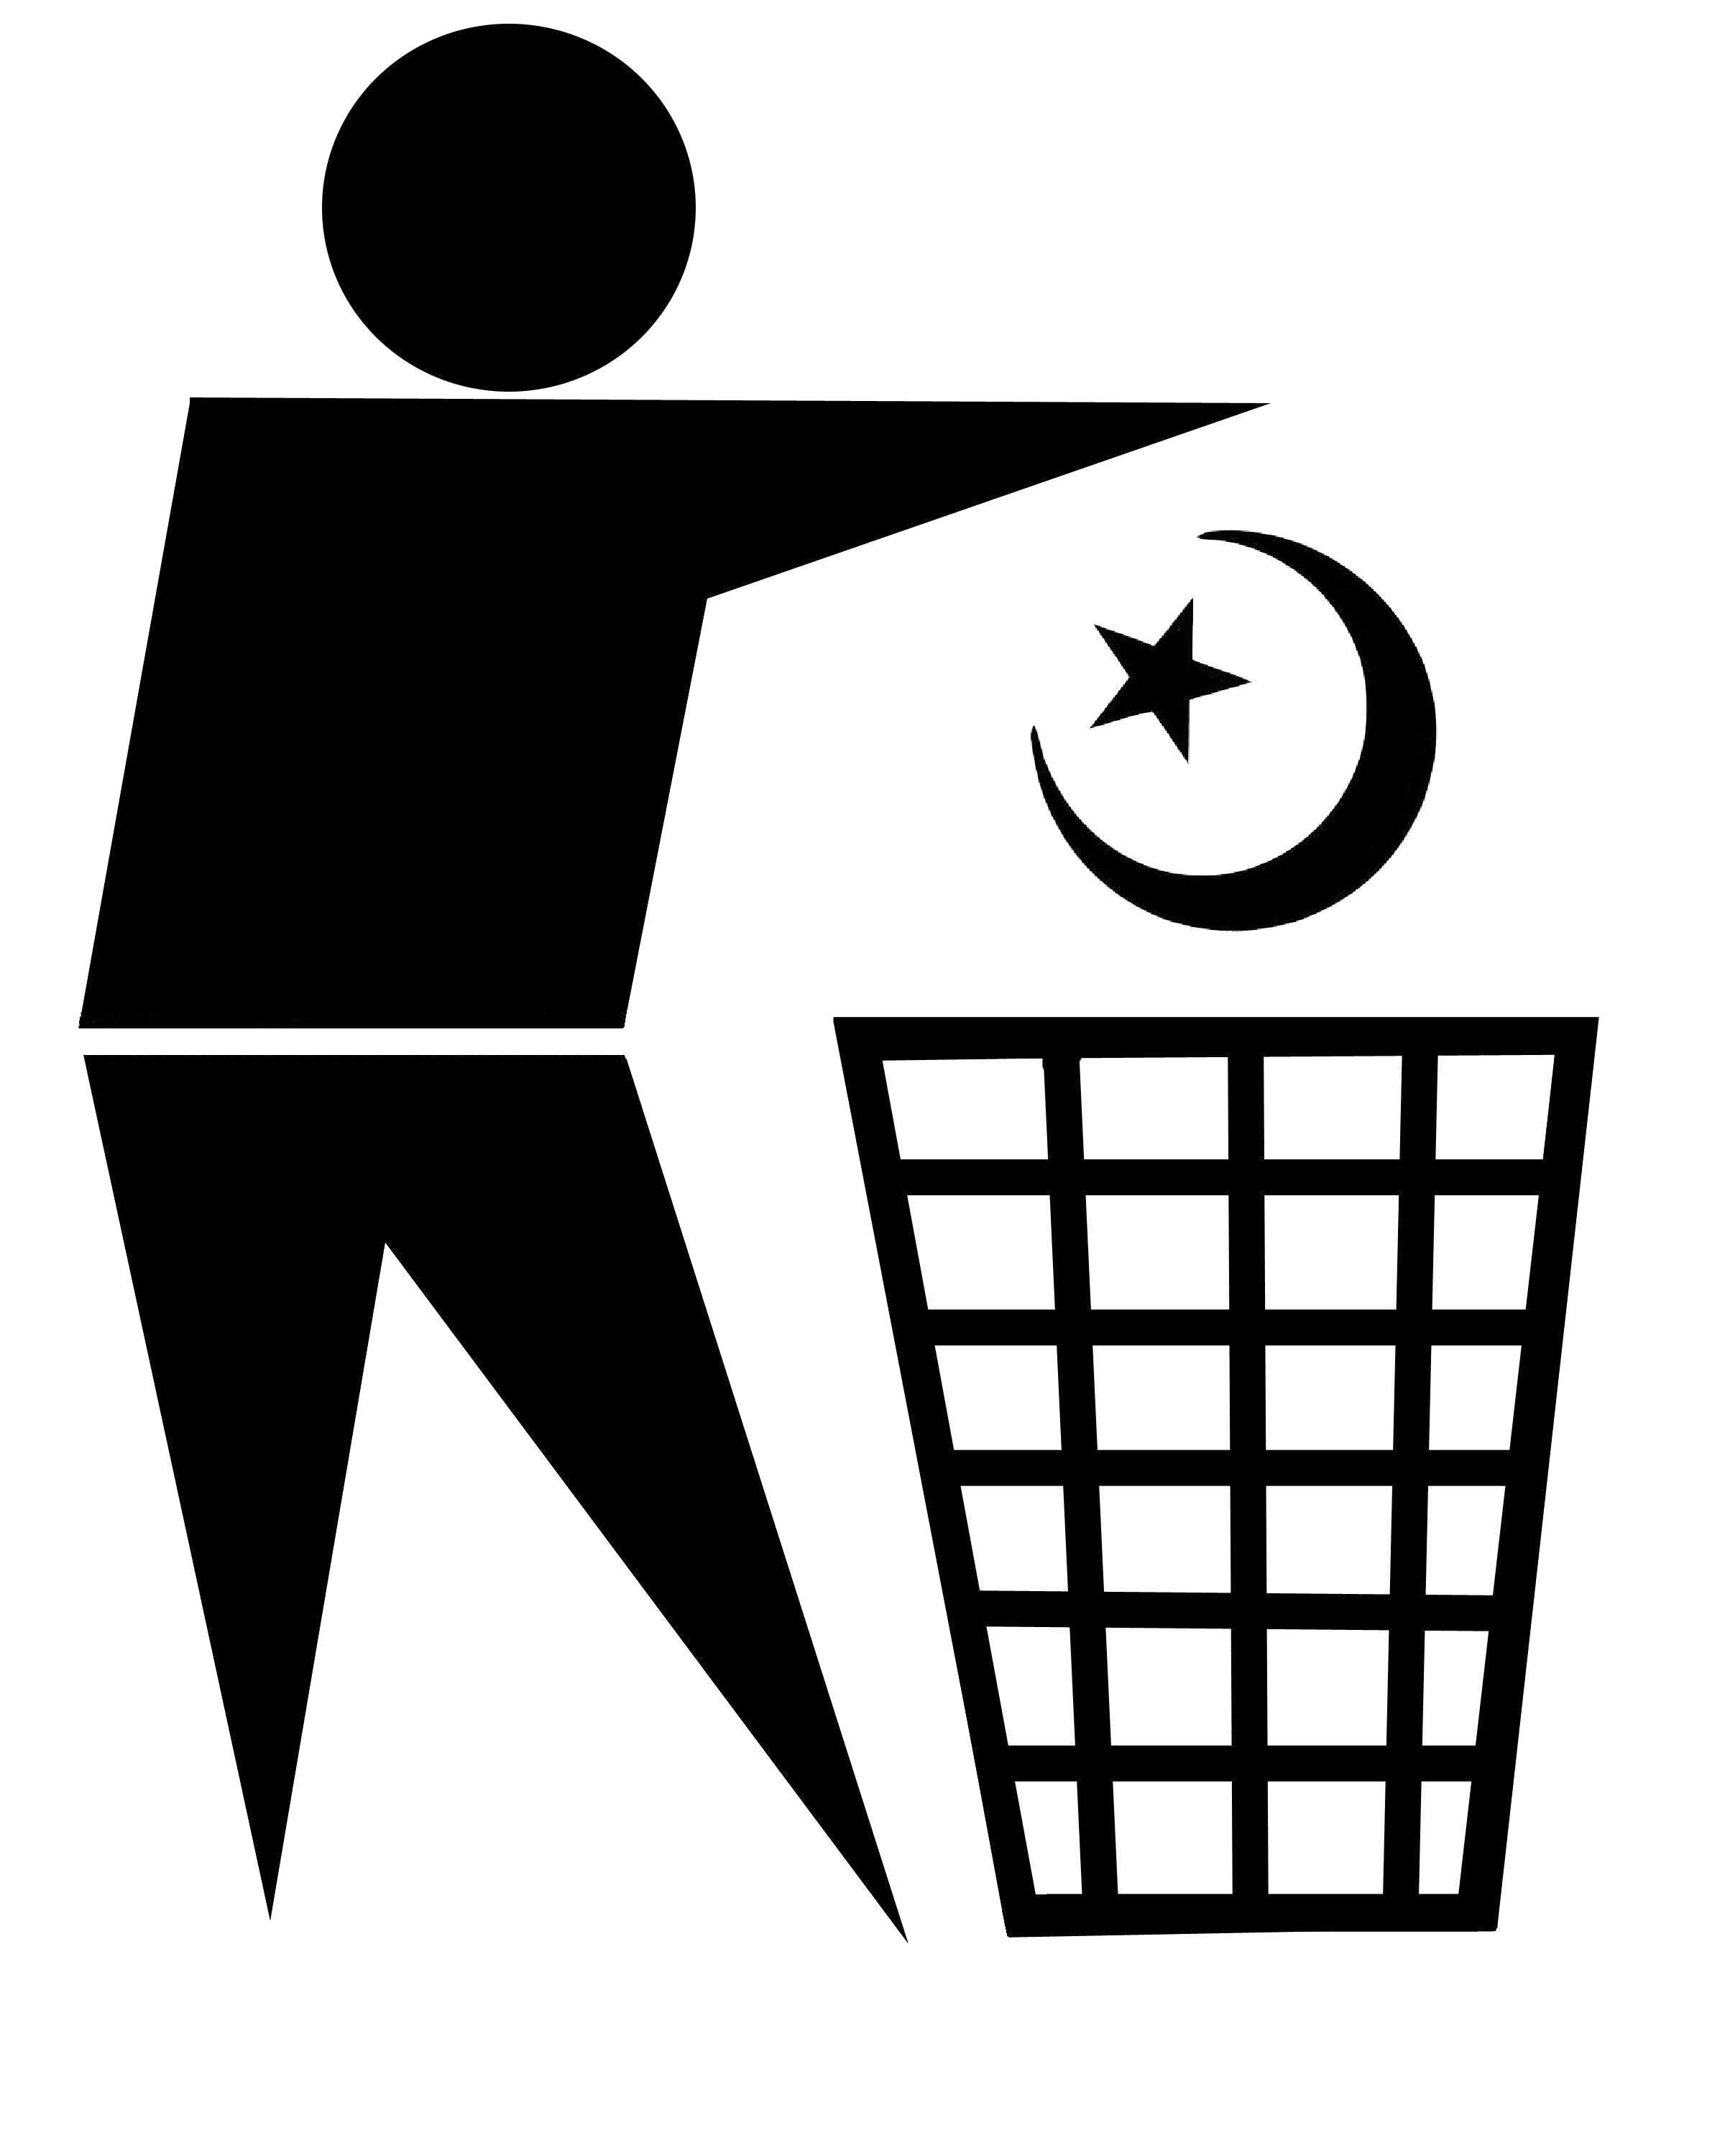 standard waste bin sign with Islamic religious symbol being discarded